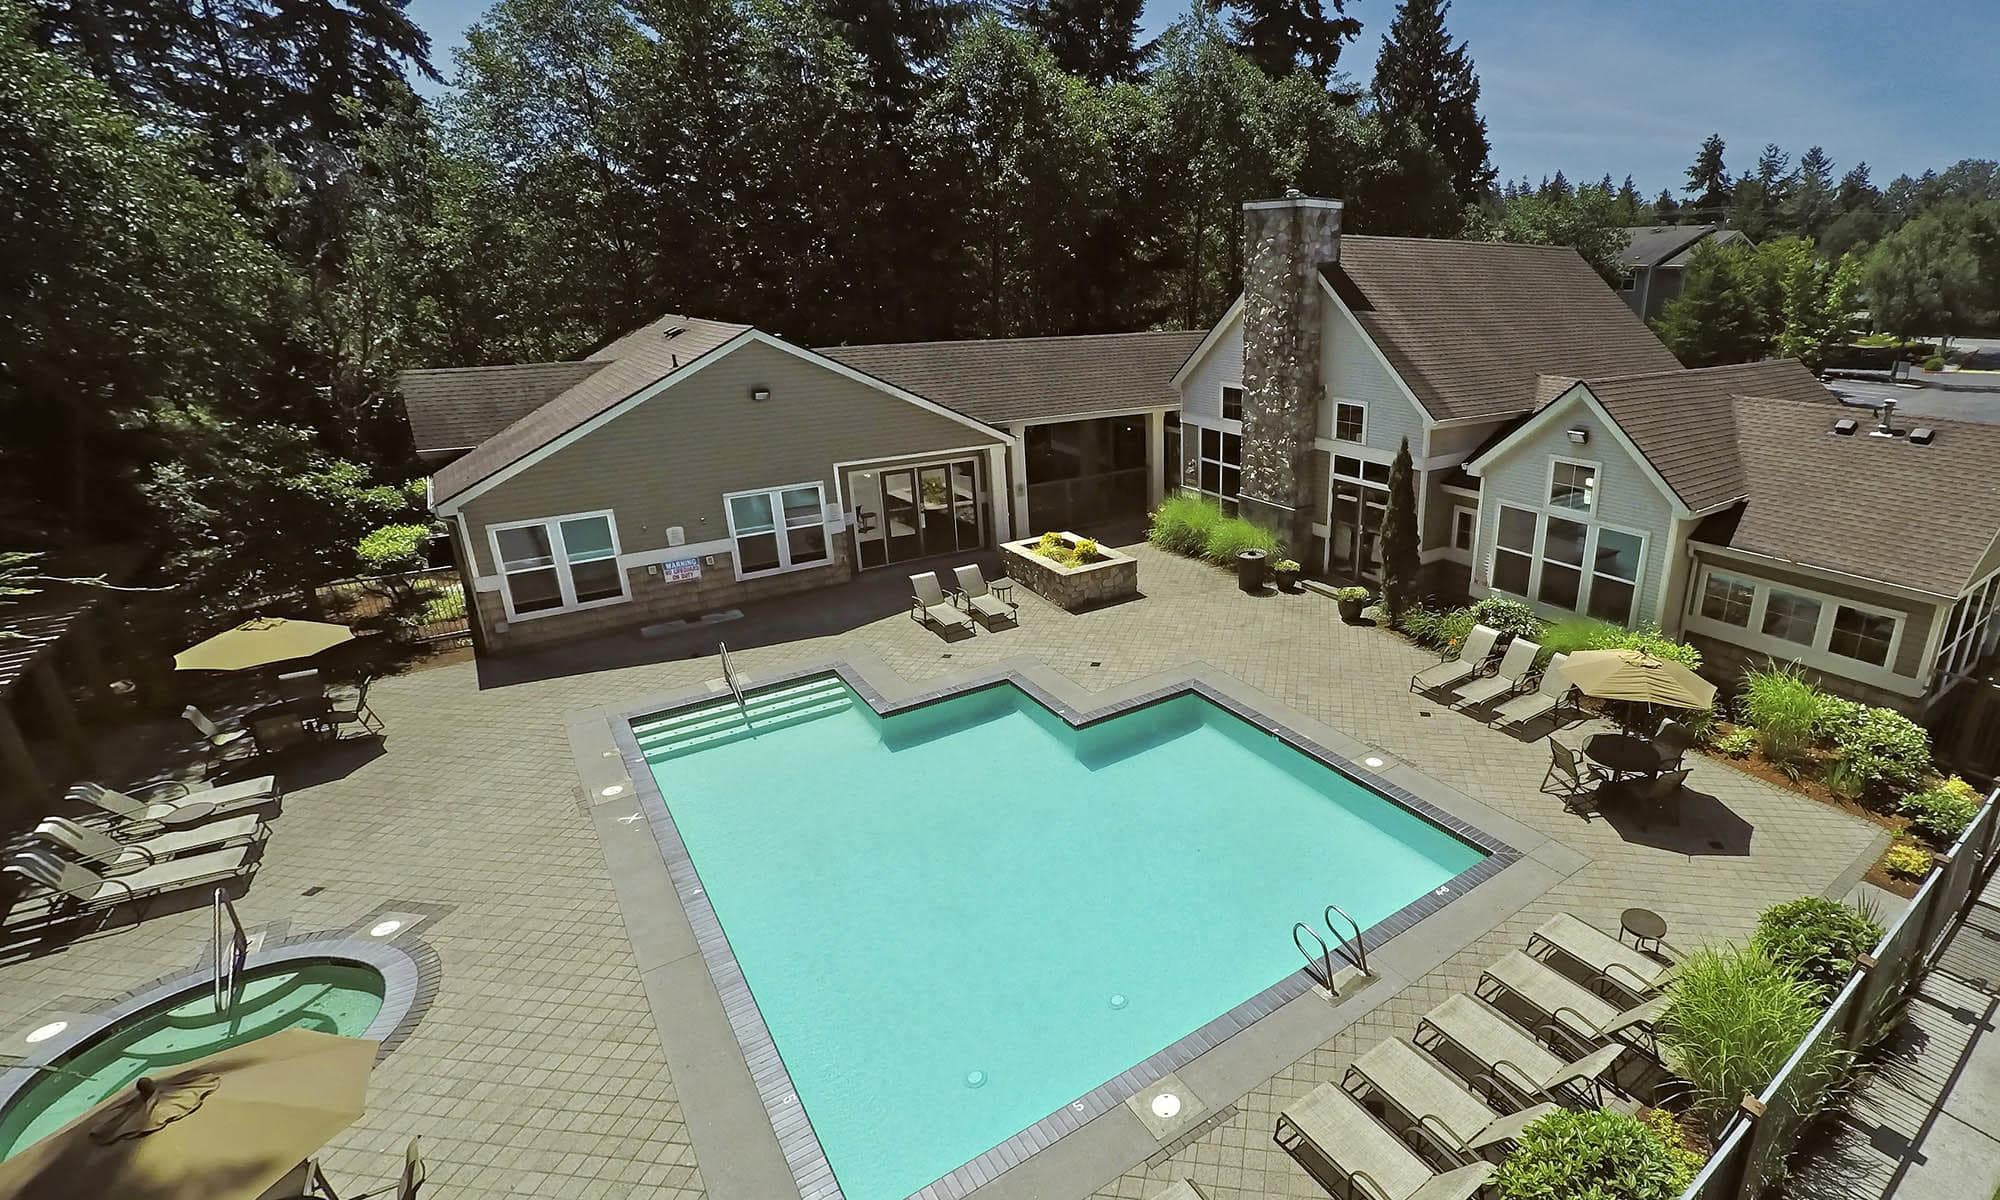 Aerial view of the pool and clubhouse at Wildreed Apartments in Everett, WA